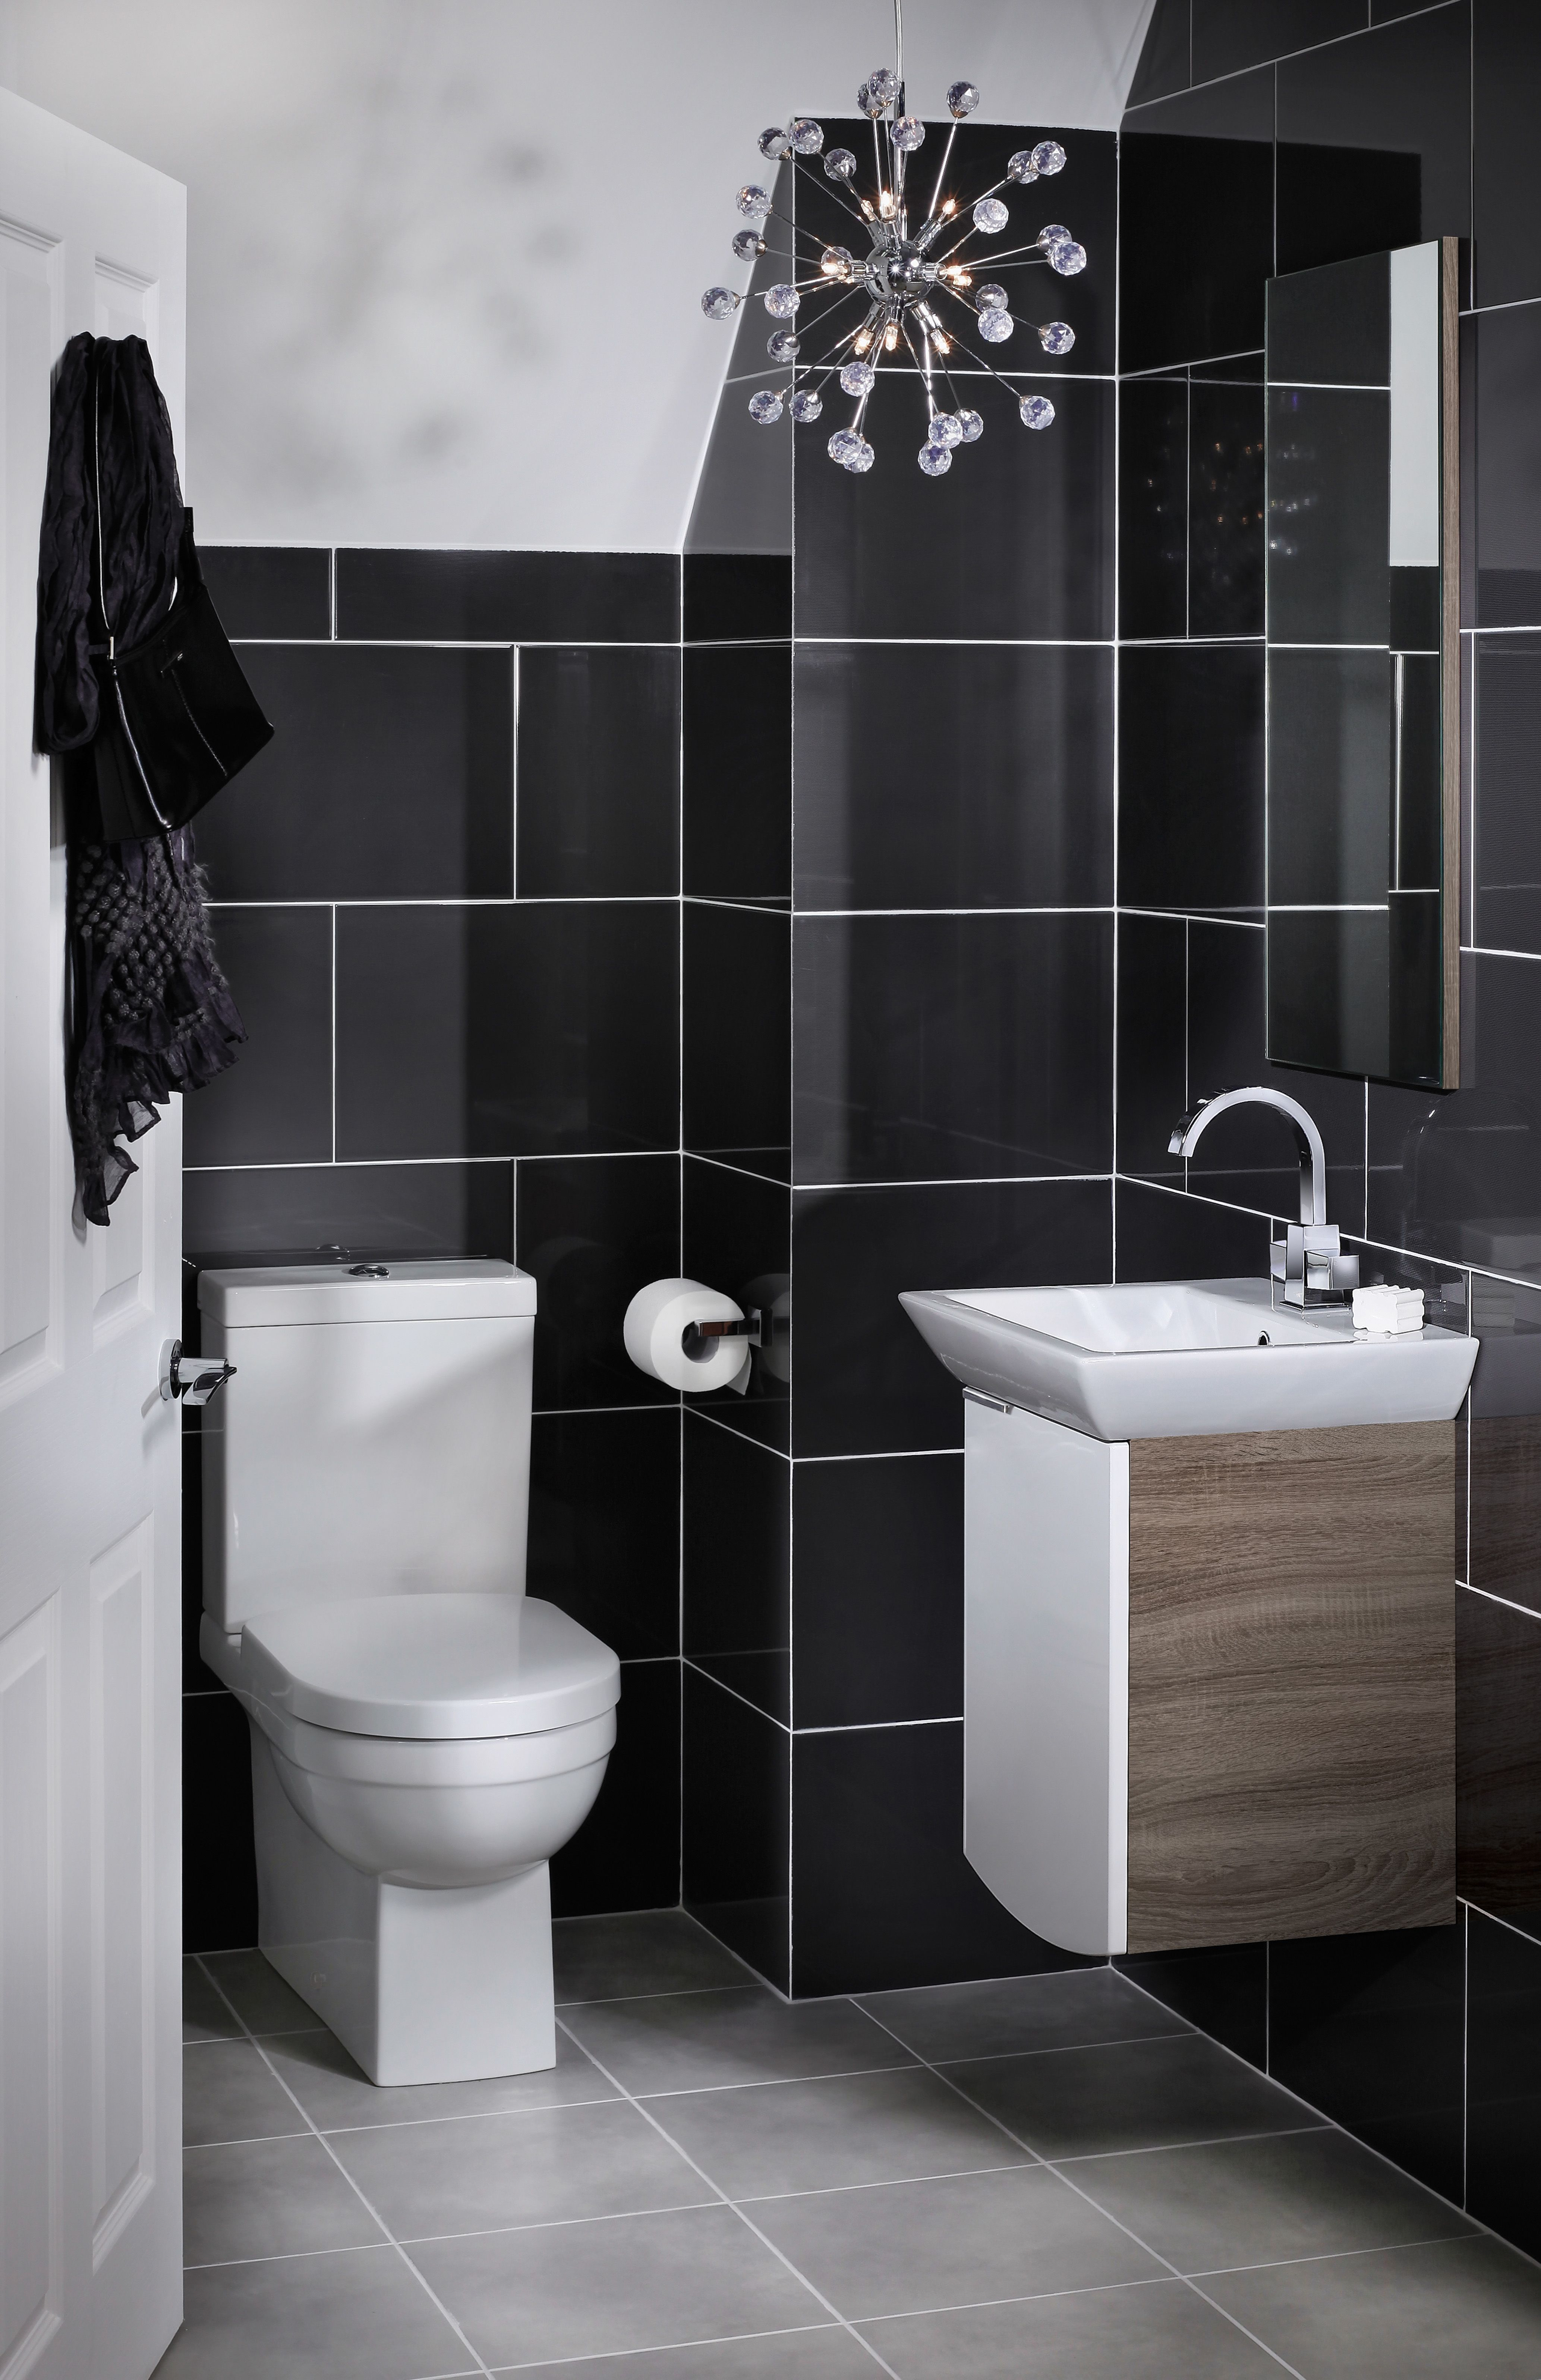 White and wood bathroom furniture from utopia bathrooms autumn